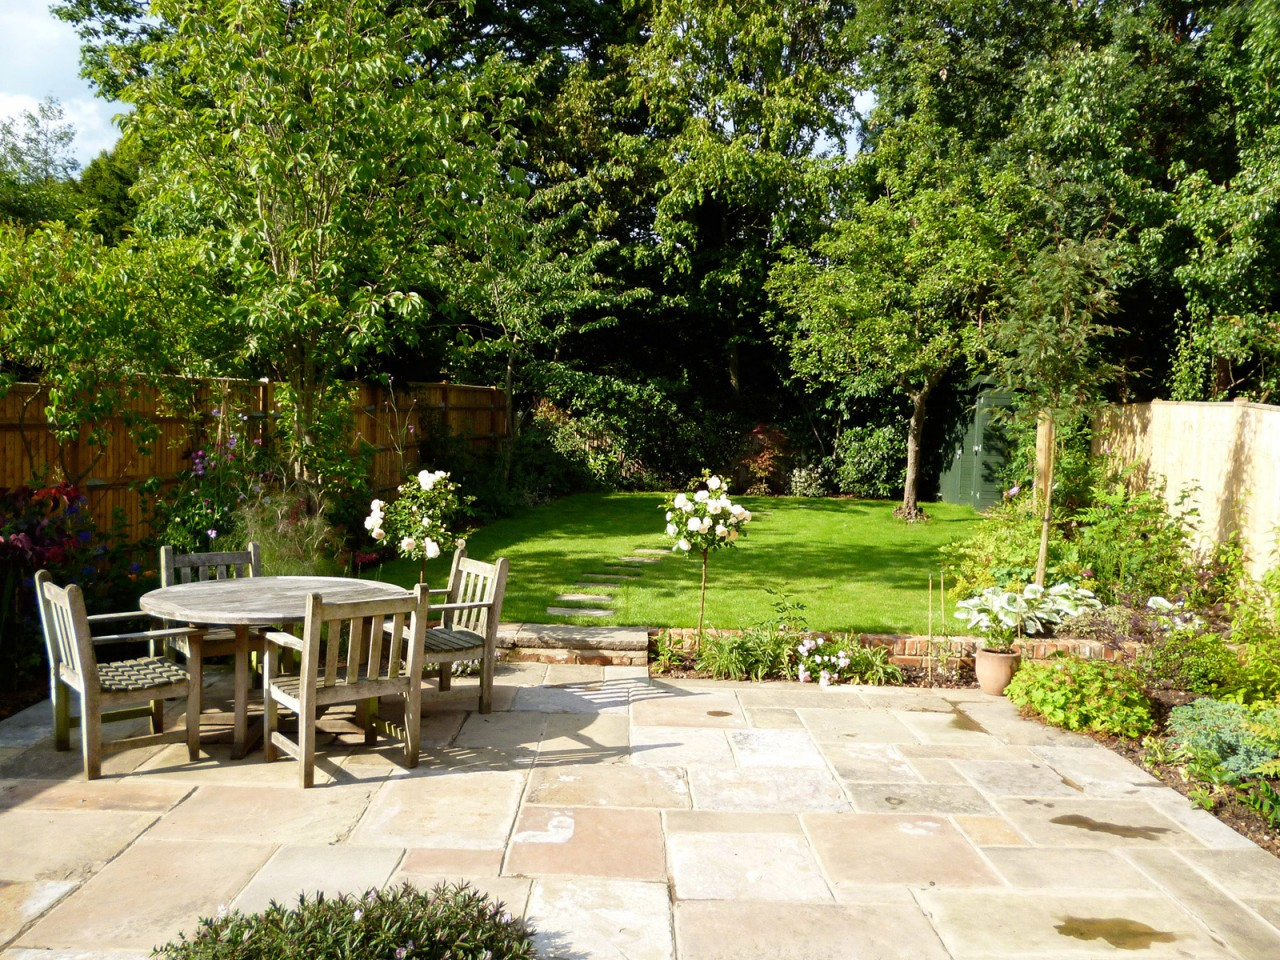 A family garden with room to entertain, relax and play.